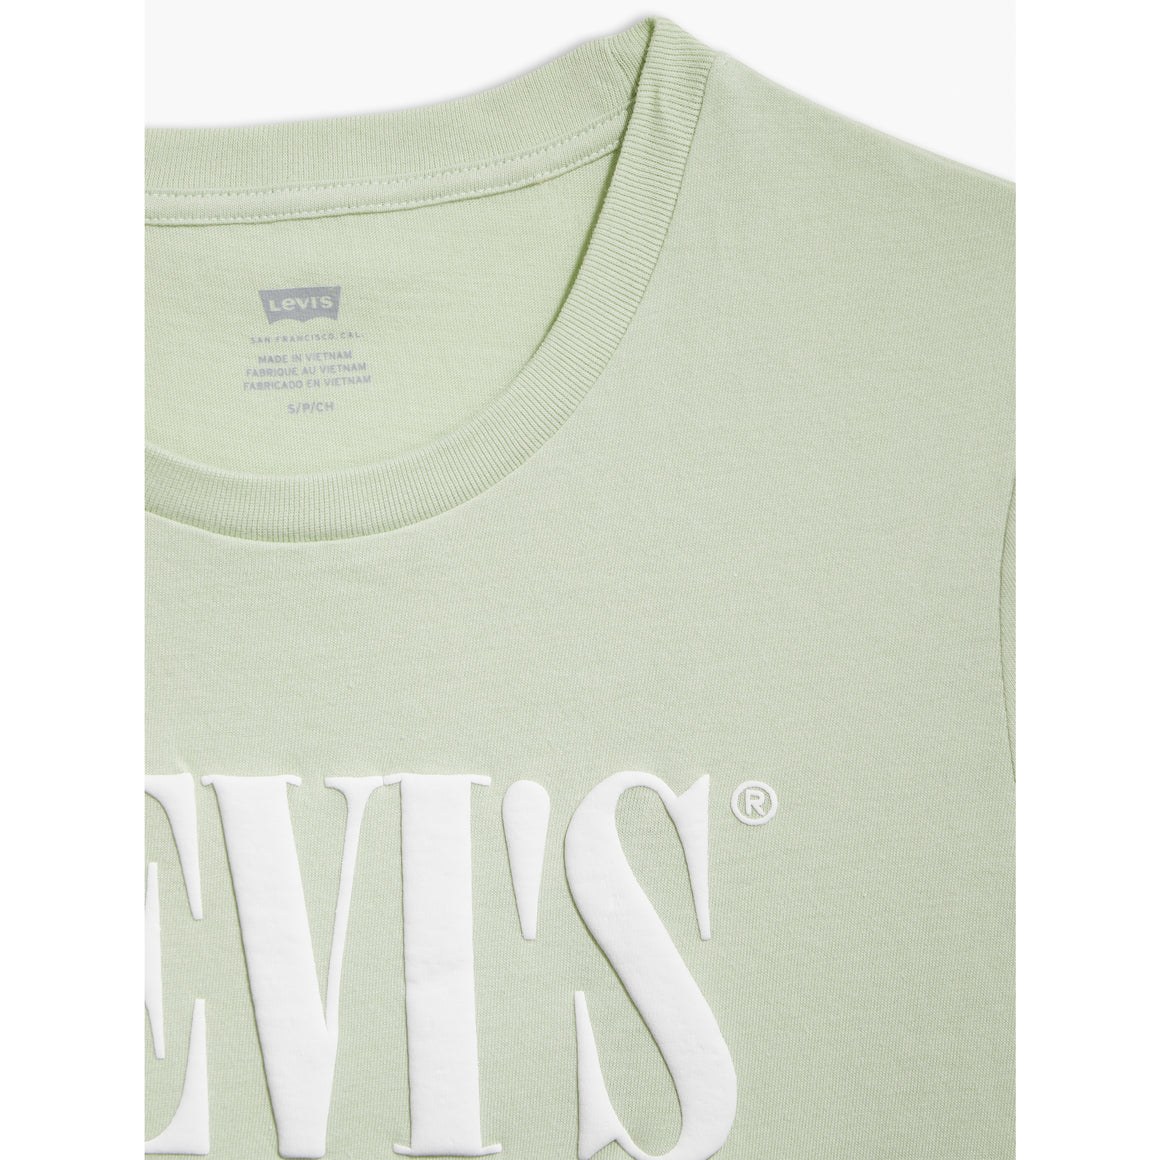 Perfect Serif Logo Tee for Women in Bok Choy